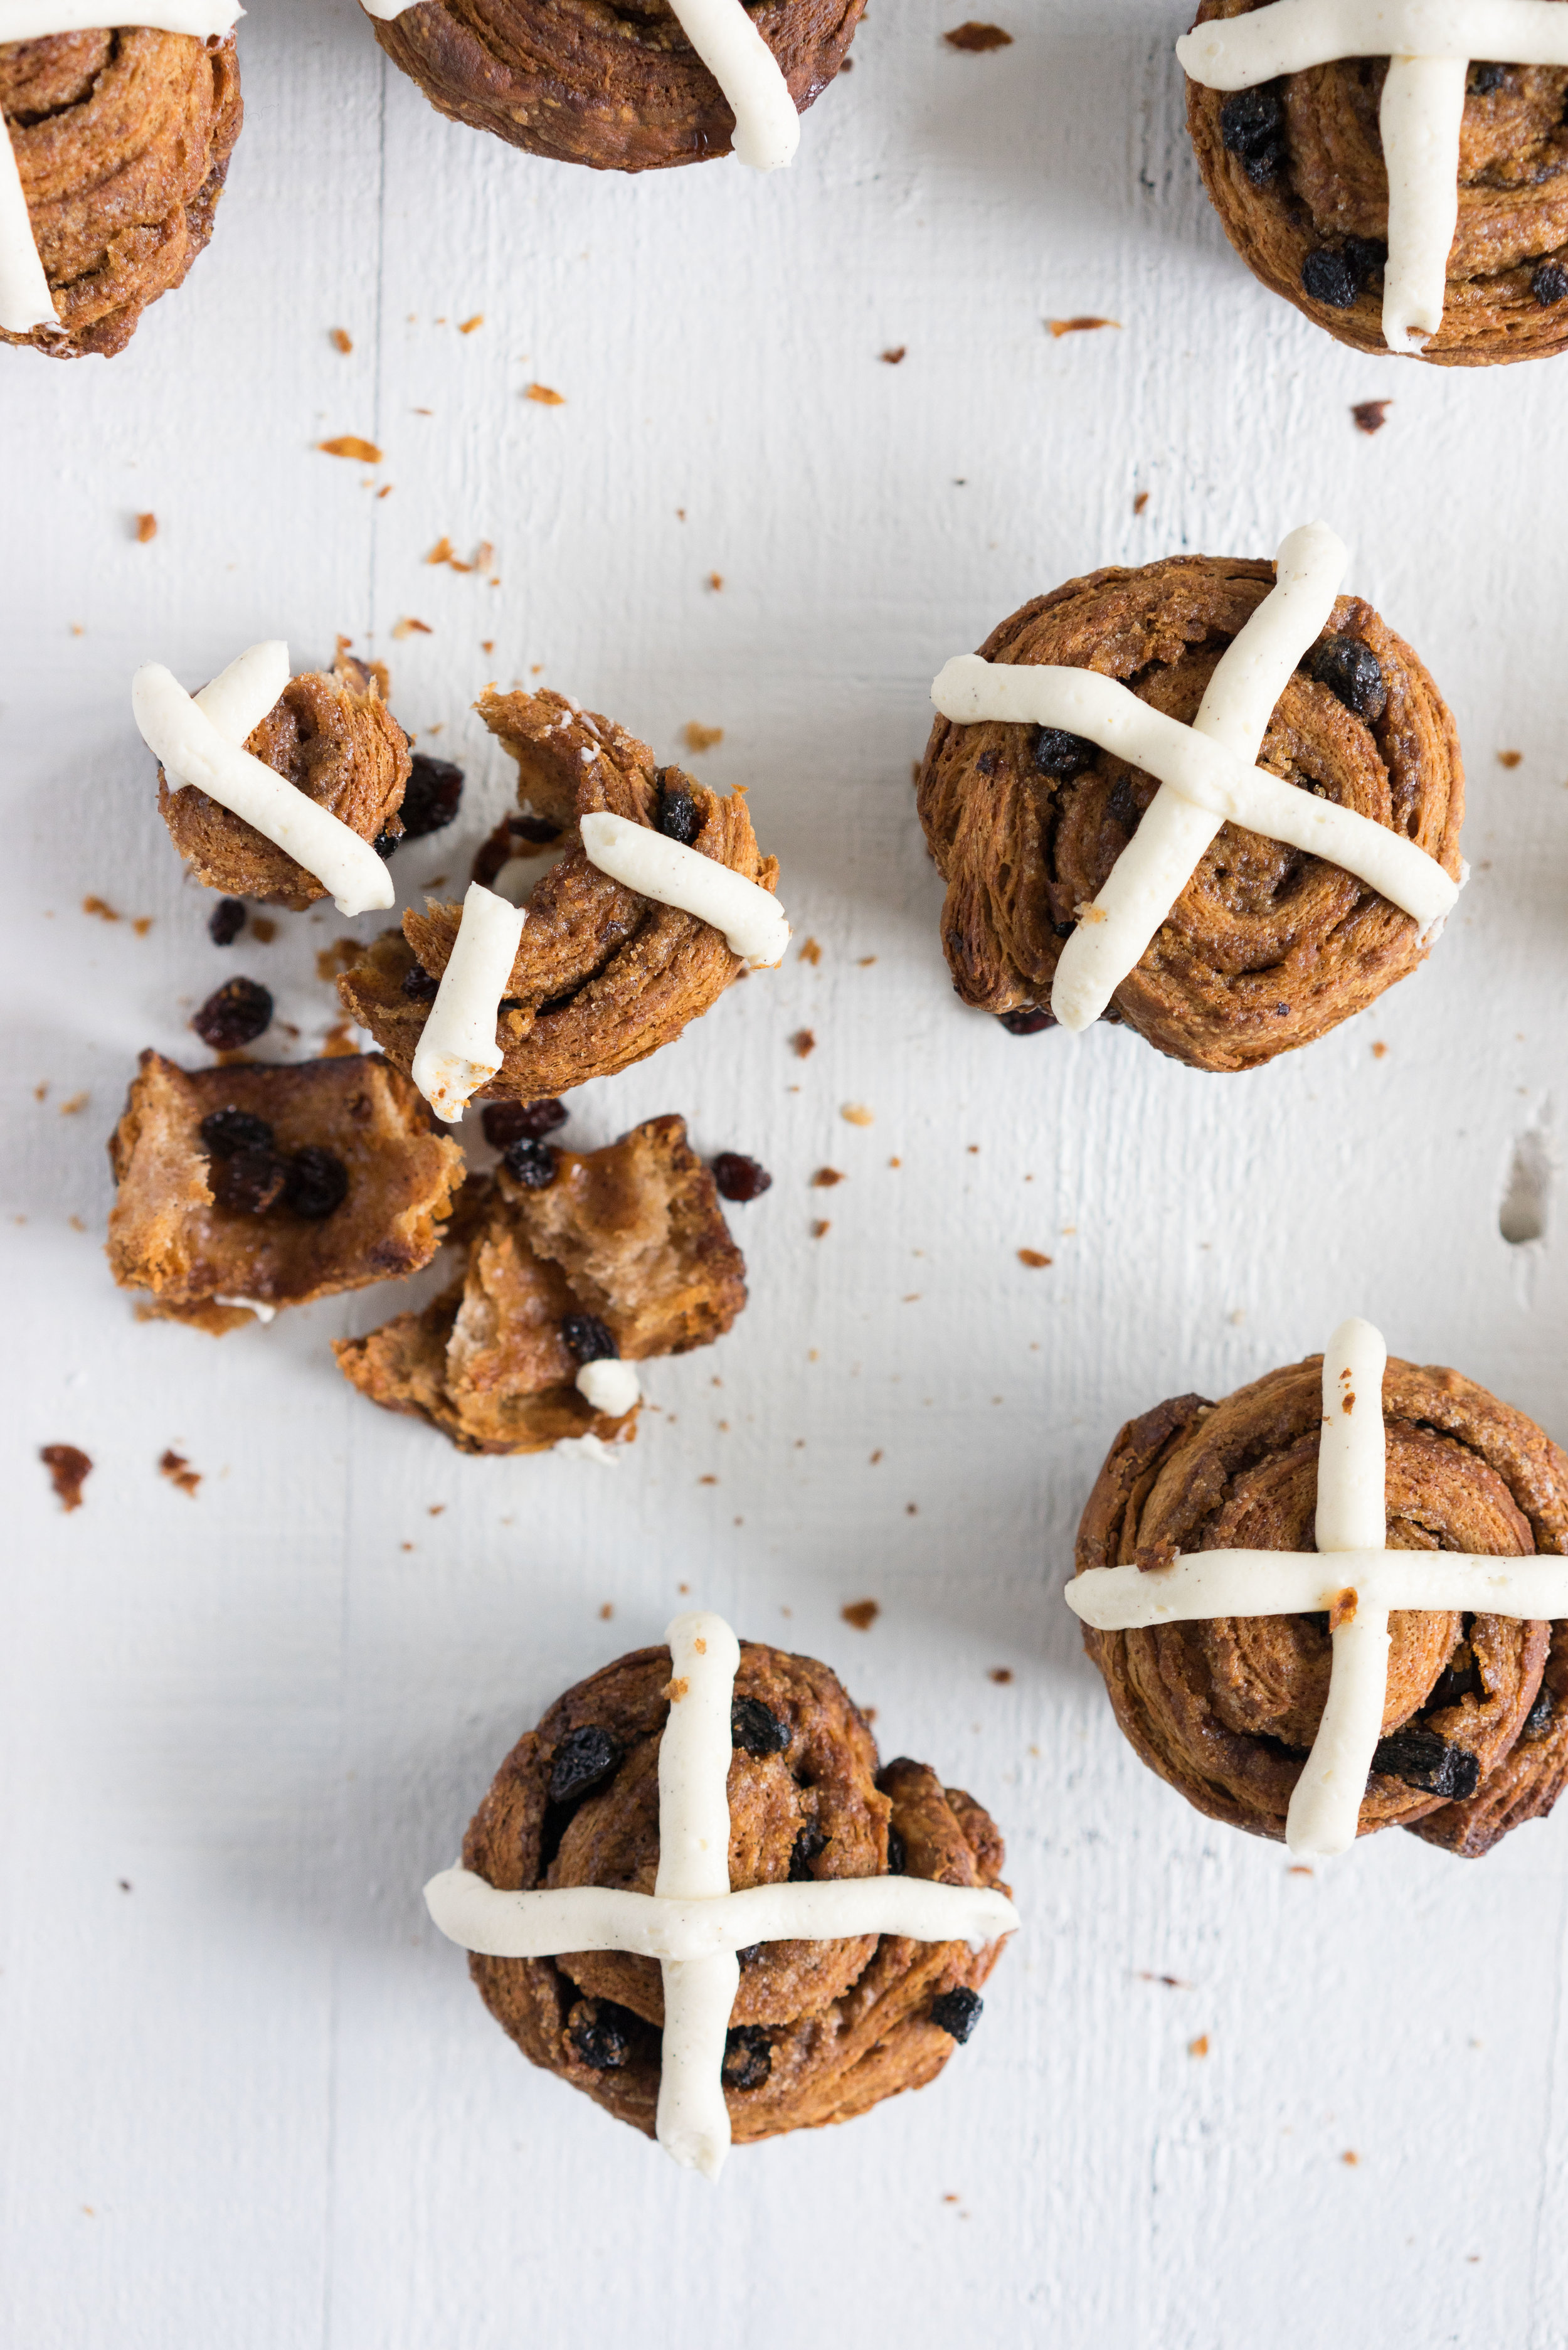 Hot Cross Bun Morning buns - a fancy twist on the traditional hot cross bun. A spiced dough is laminated with spiced butter, before being filled with a spiced sugar and dried fruit, and rolled up into a morning bun. The buns are finished with a mascarpone vanilla bean cross.